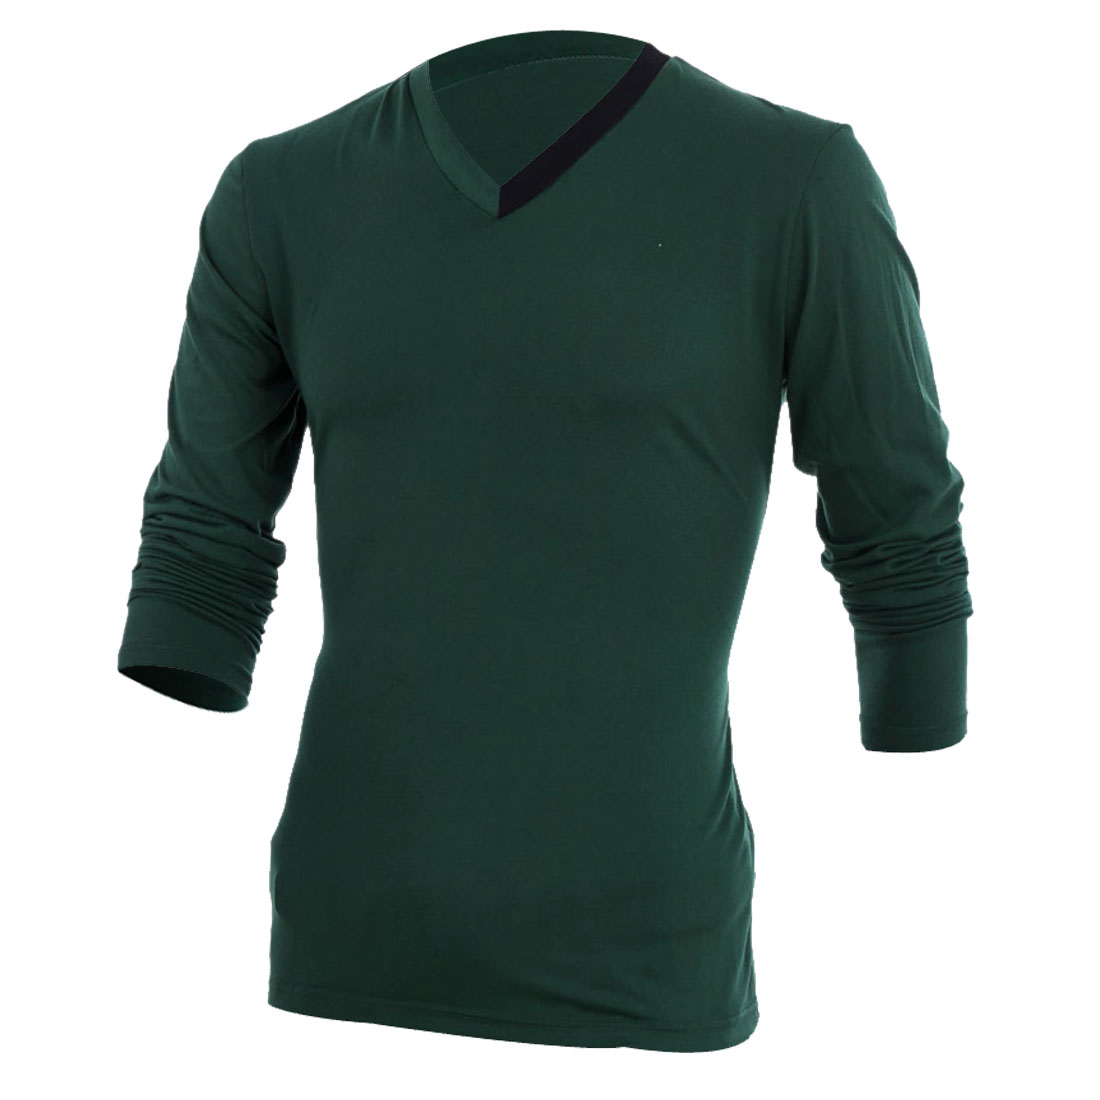 Mens Chic Splice V Neck Long Sleeve Design Slim Fit Dark Green Top Shirt M